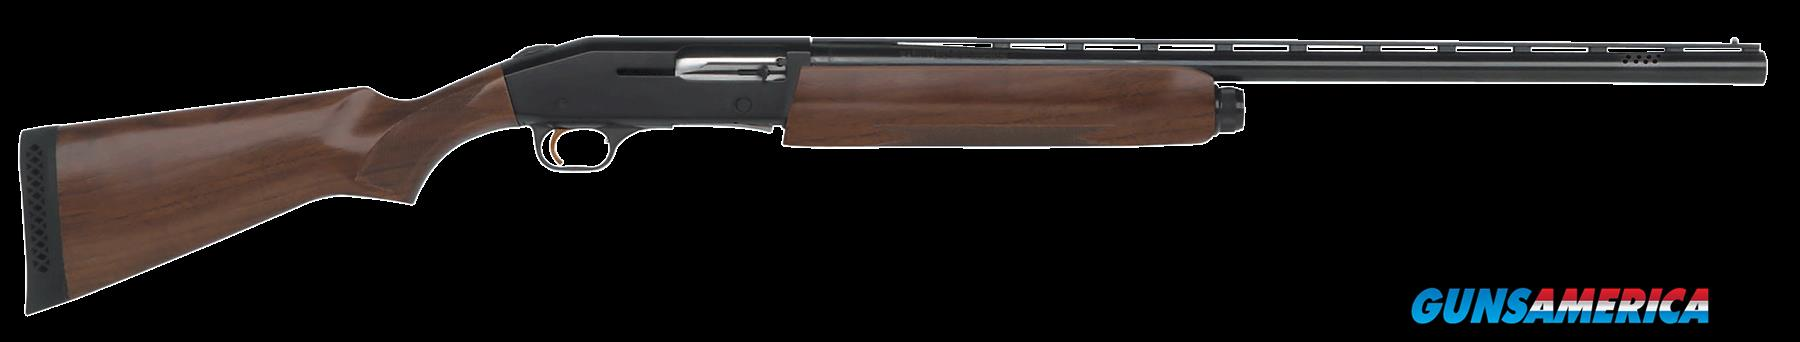 "Mossberg 85120 930 Semi-Automatic 12 ga 26"" 3"" Walnut Stk Blued  Guns > Shotguns > MN Misc Shotguns"